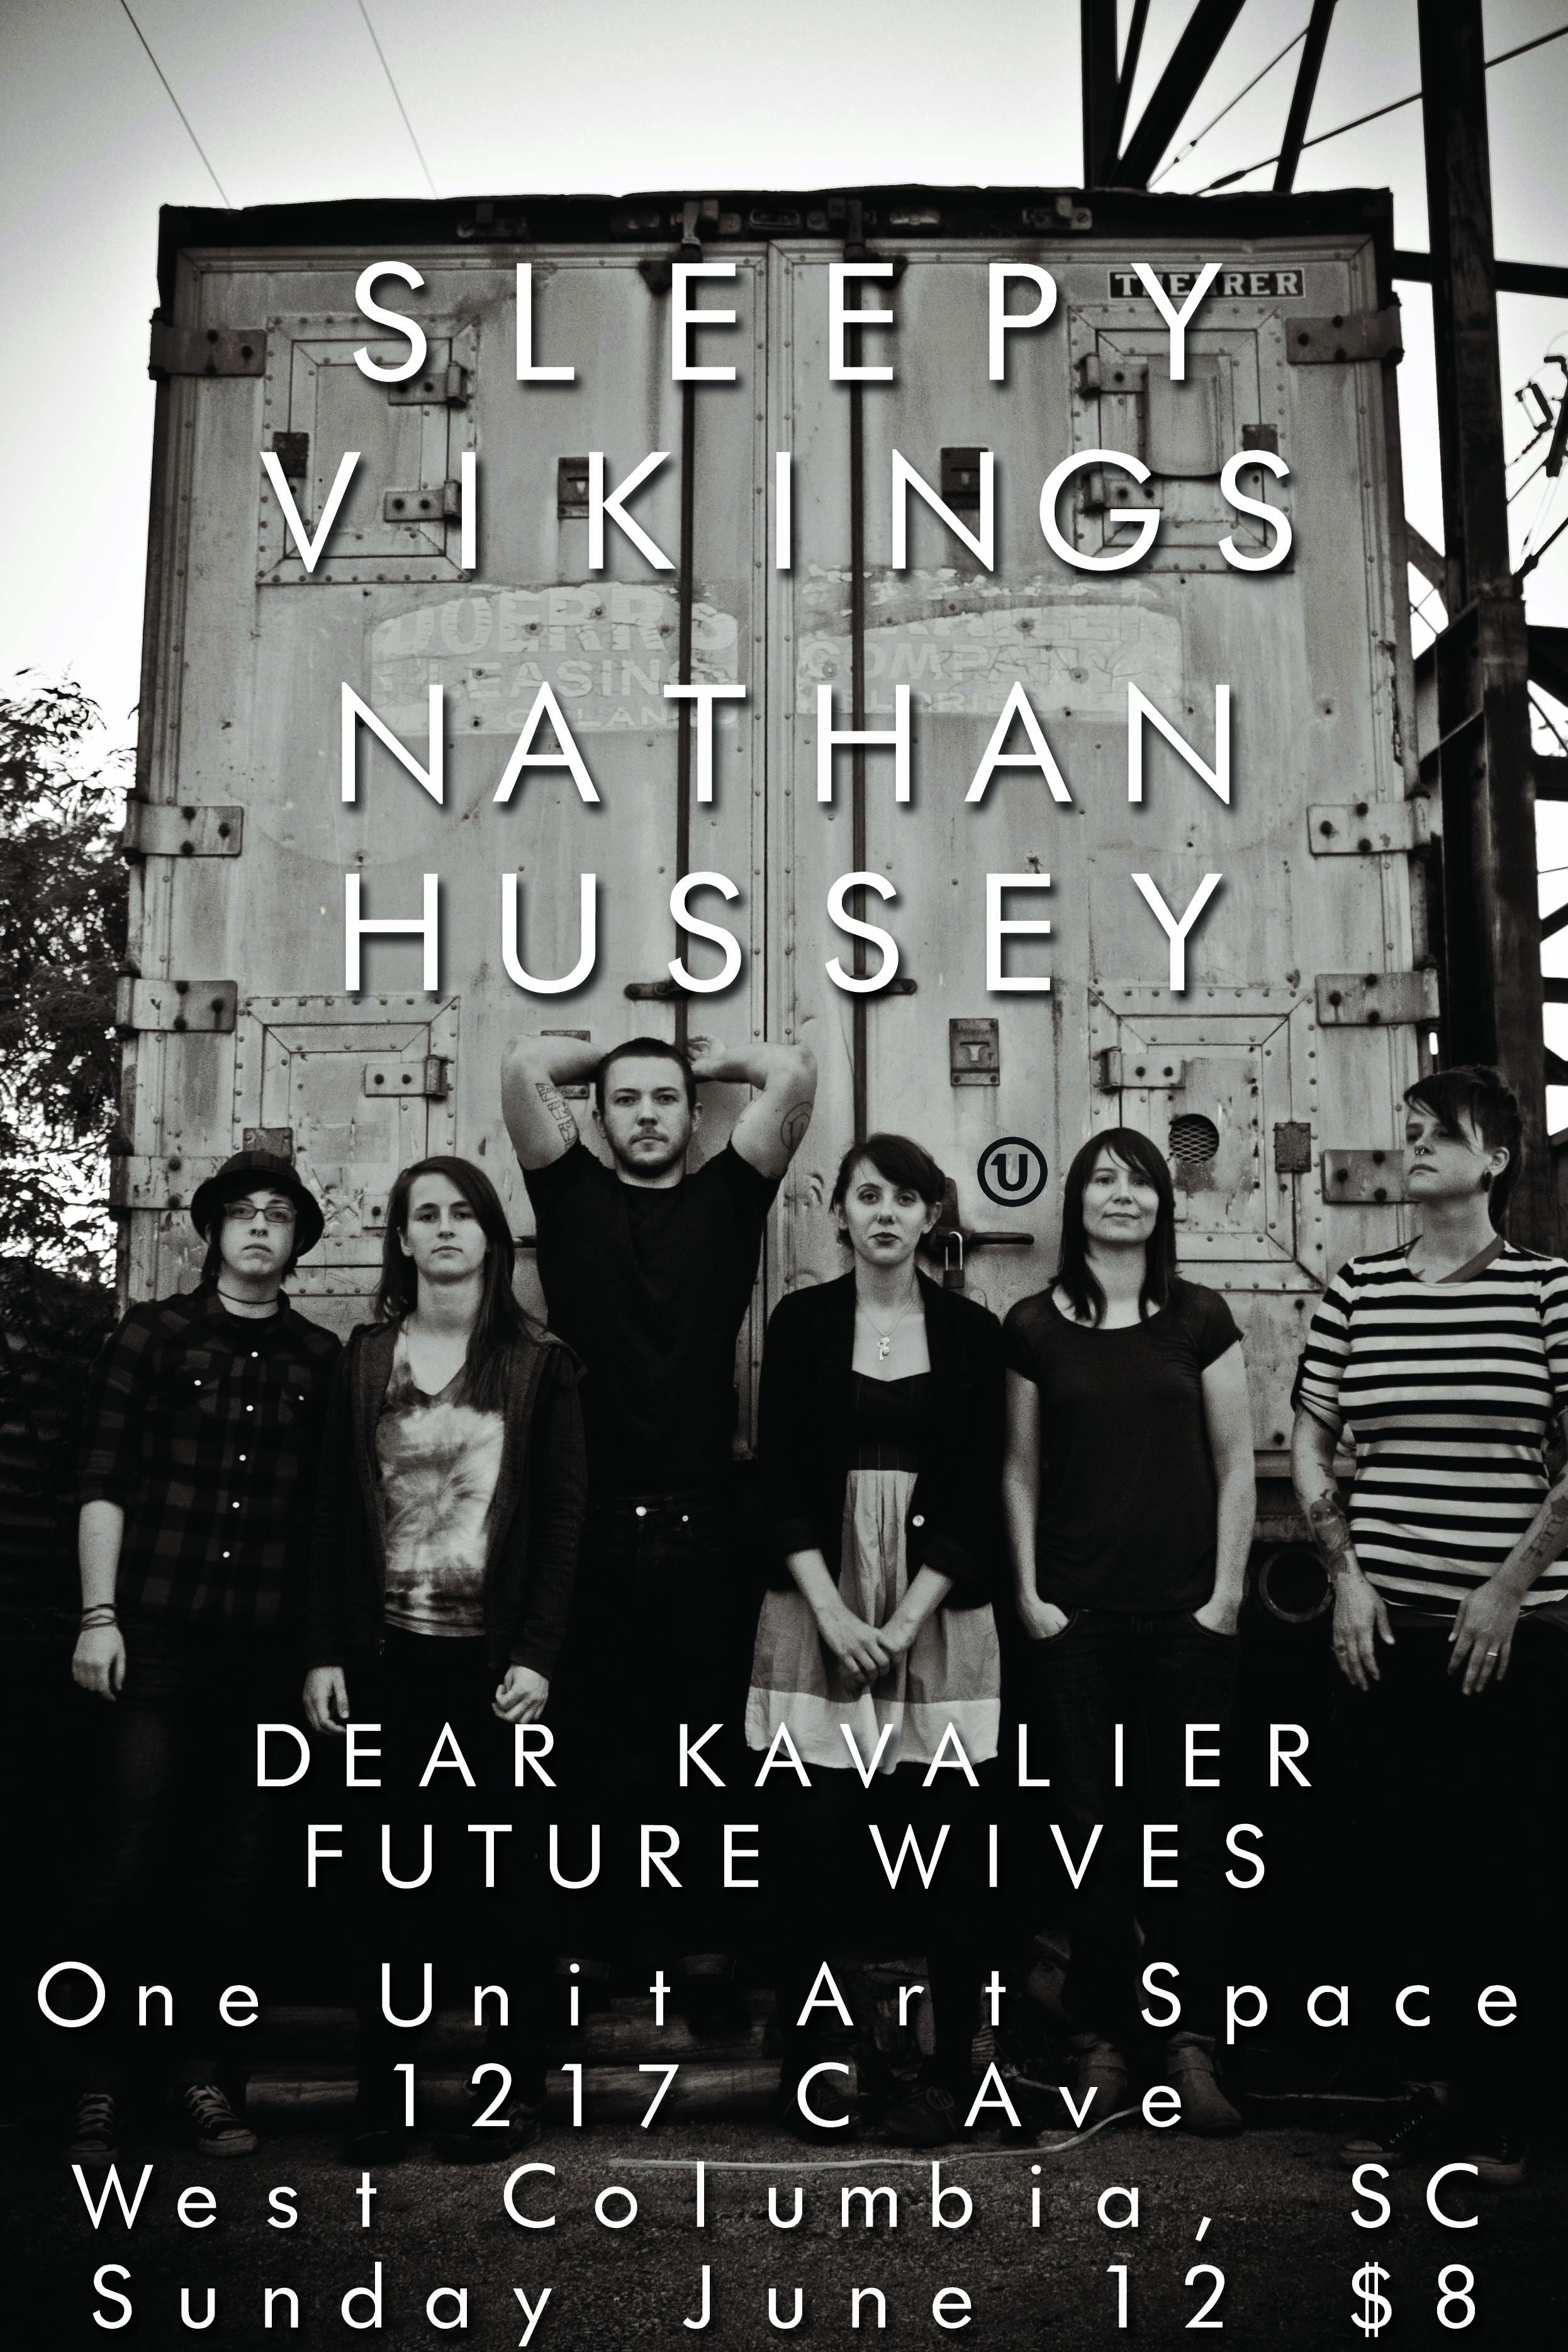 Show Preview: Nathan Hussey, Sleepy Vikings at One Unit Art Space